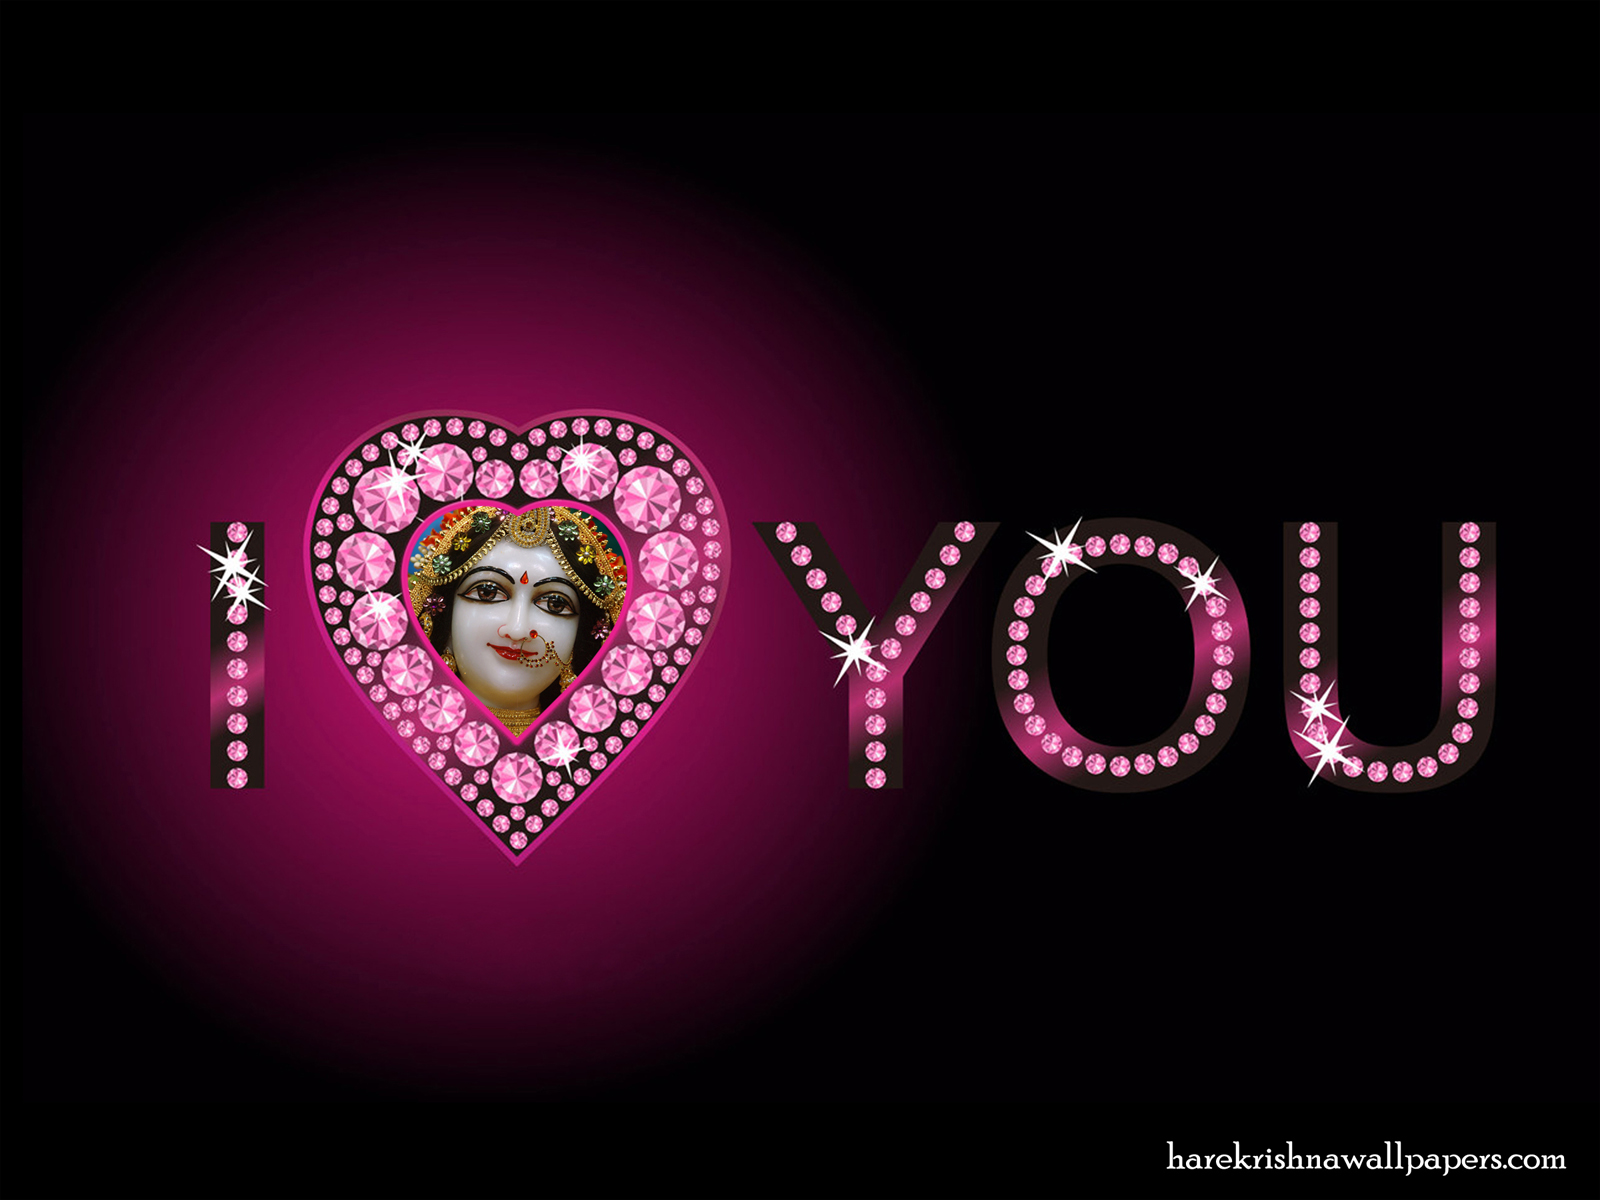 I Love You Radharani Wallpaper (012) Size1600x1200 Download